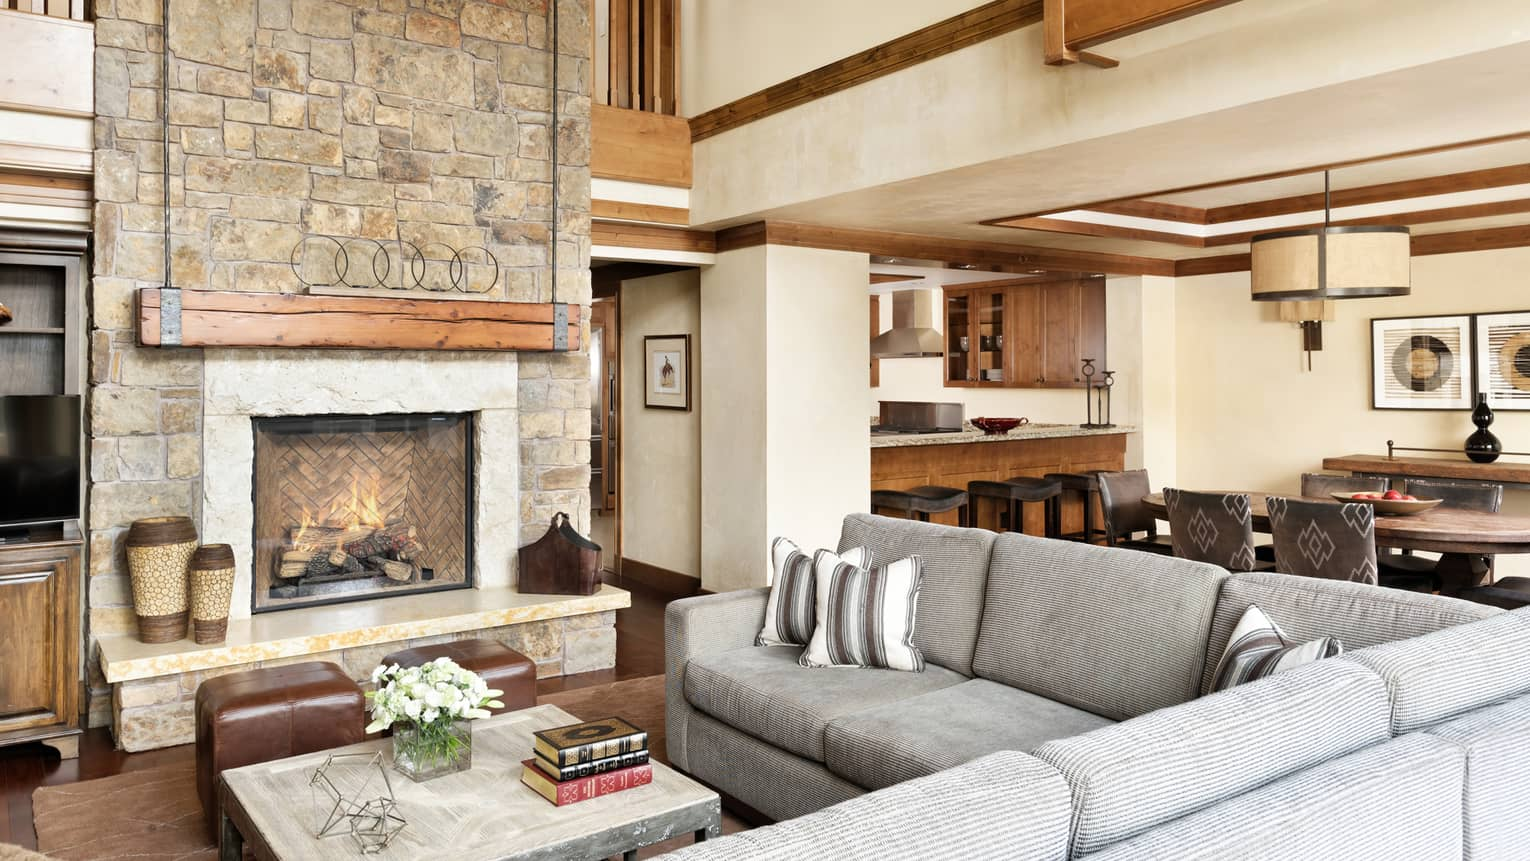 Leather and upholstered sofas, a wooden table, trim, stone fireplace, connected dining room area